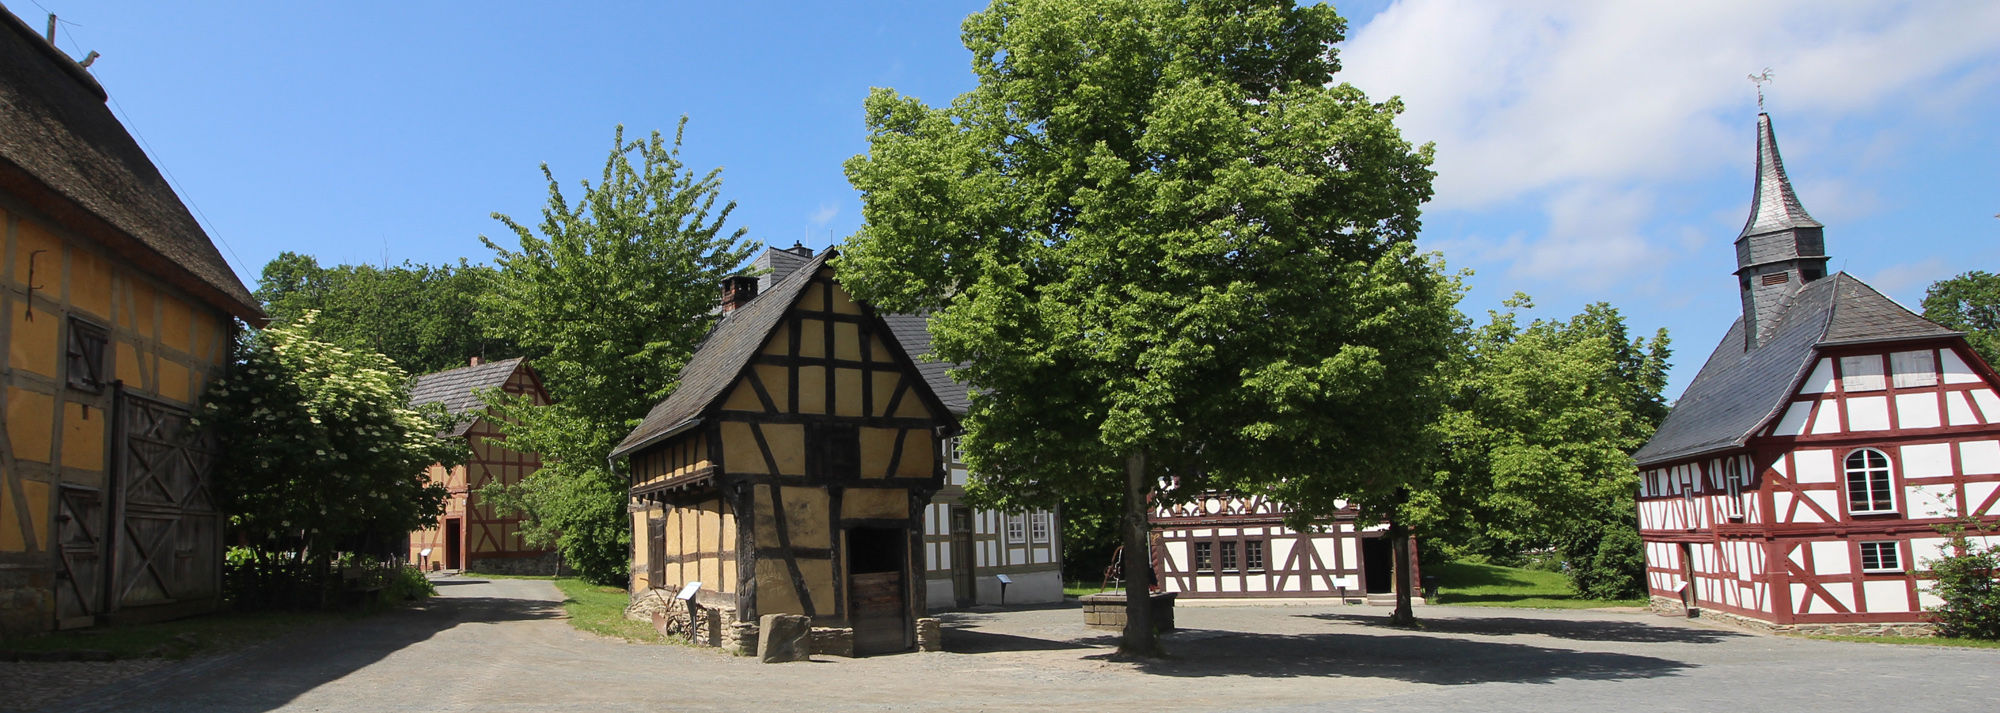 Smithy from Weinbach